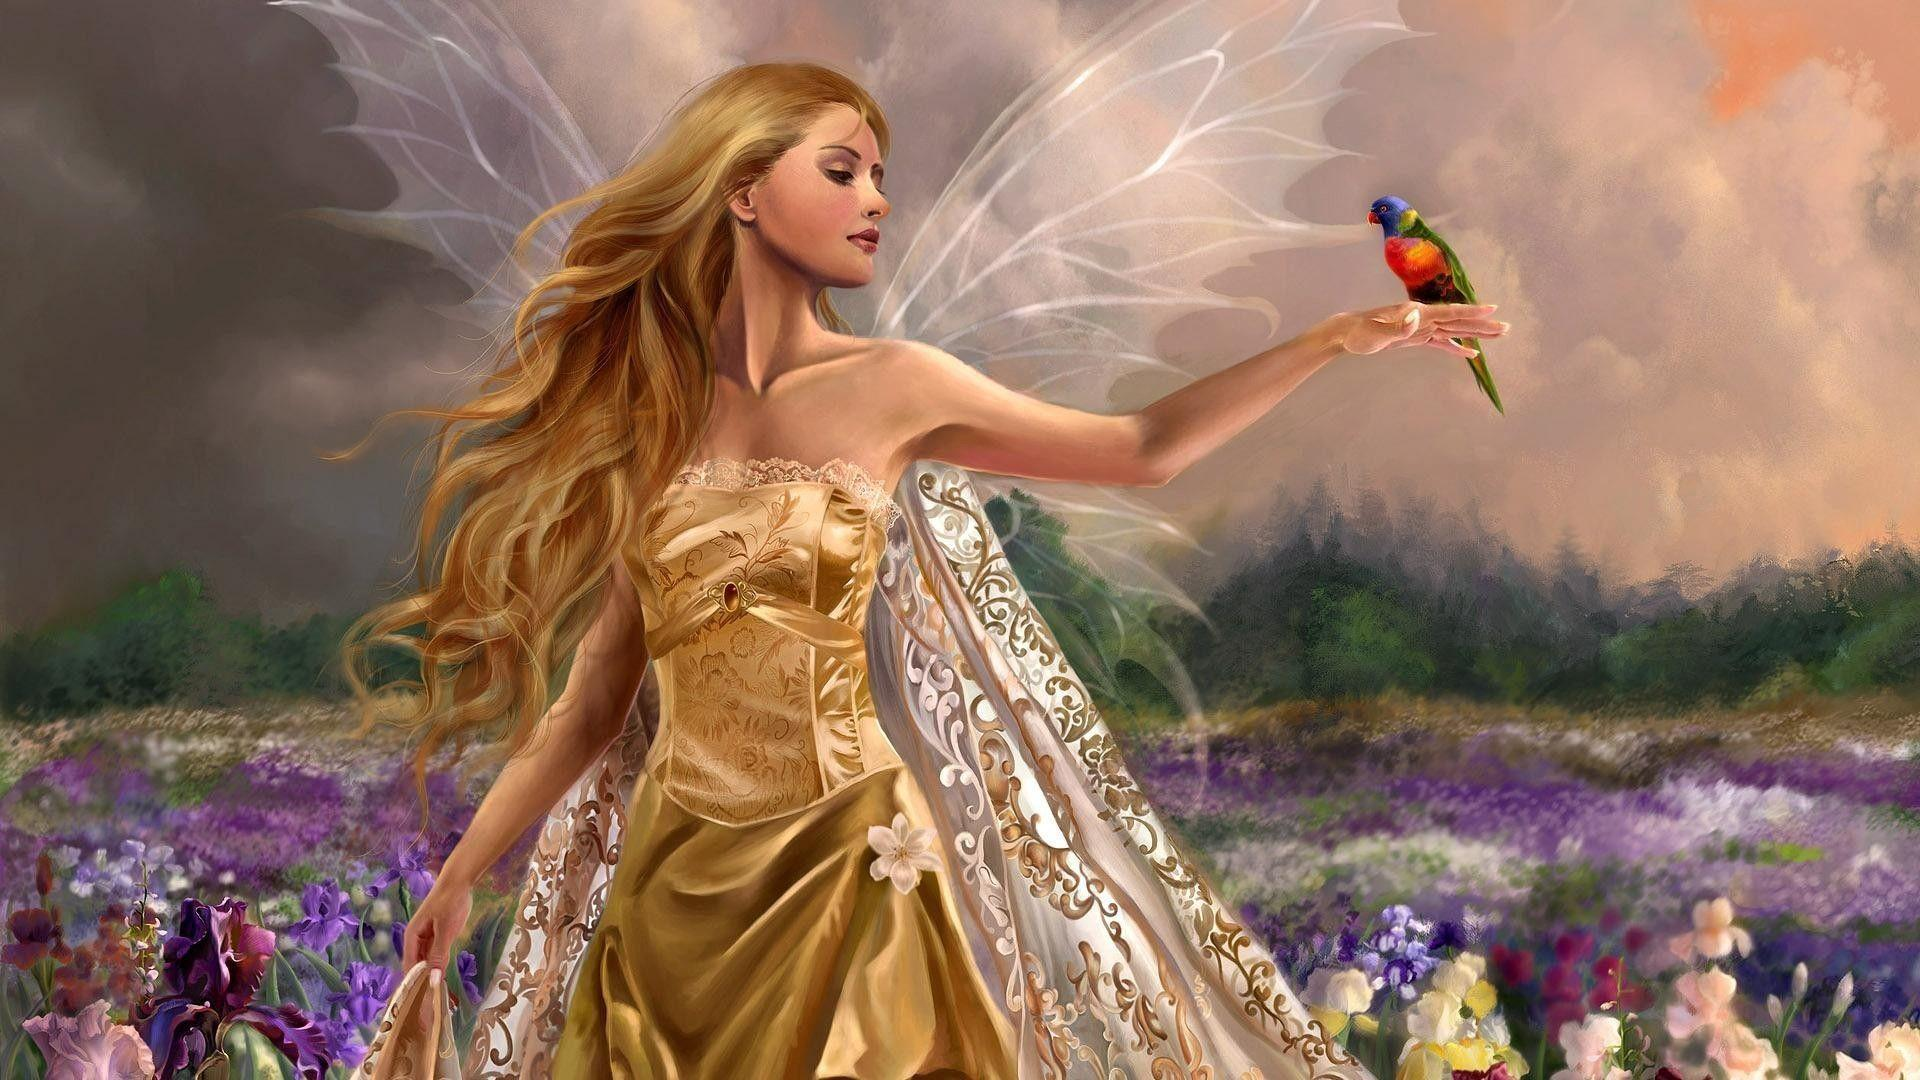 Fairy Wallpapers - Top Free Fairy ...